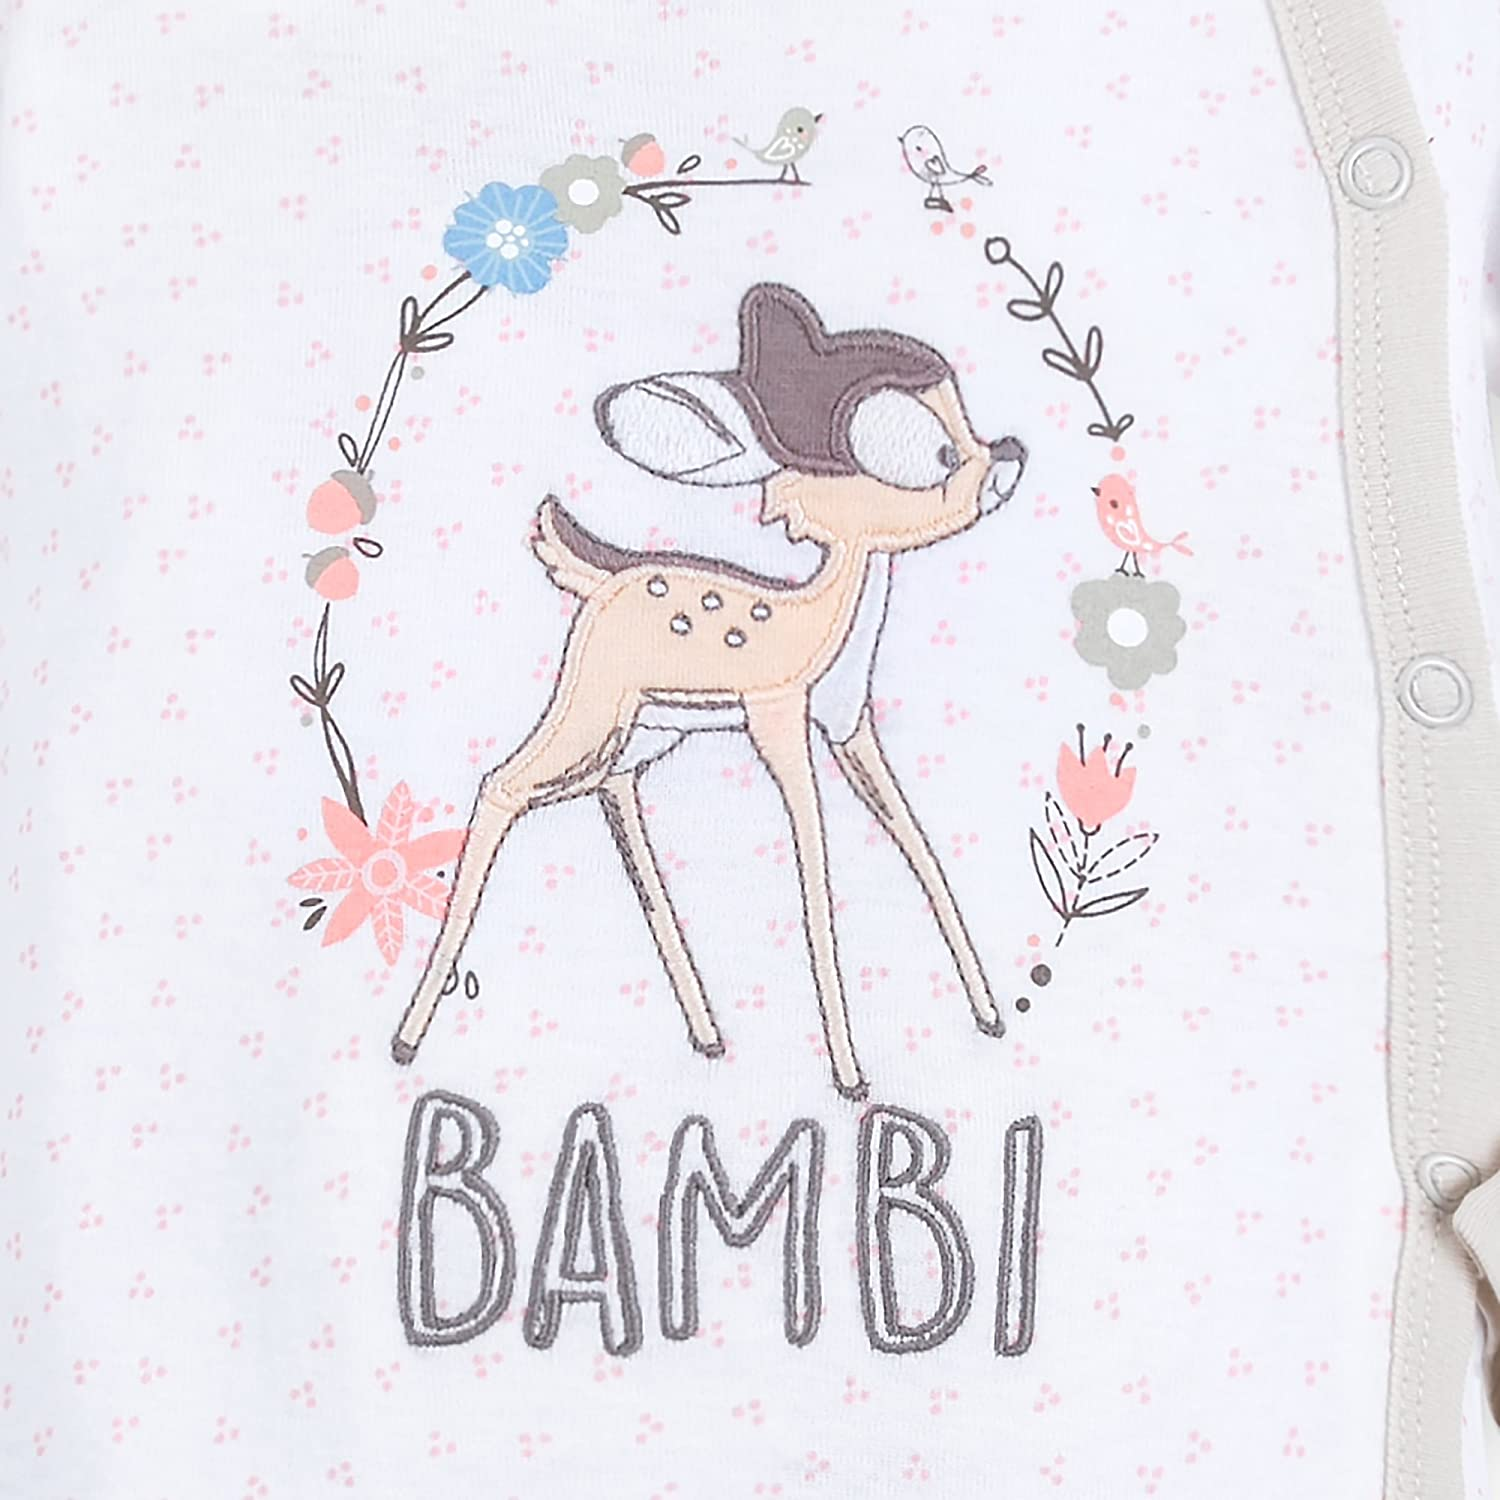 Disney Bambi Footed Stretchie Sleeper for Baby Size 12-18 MO Multi